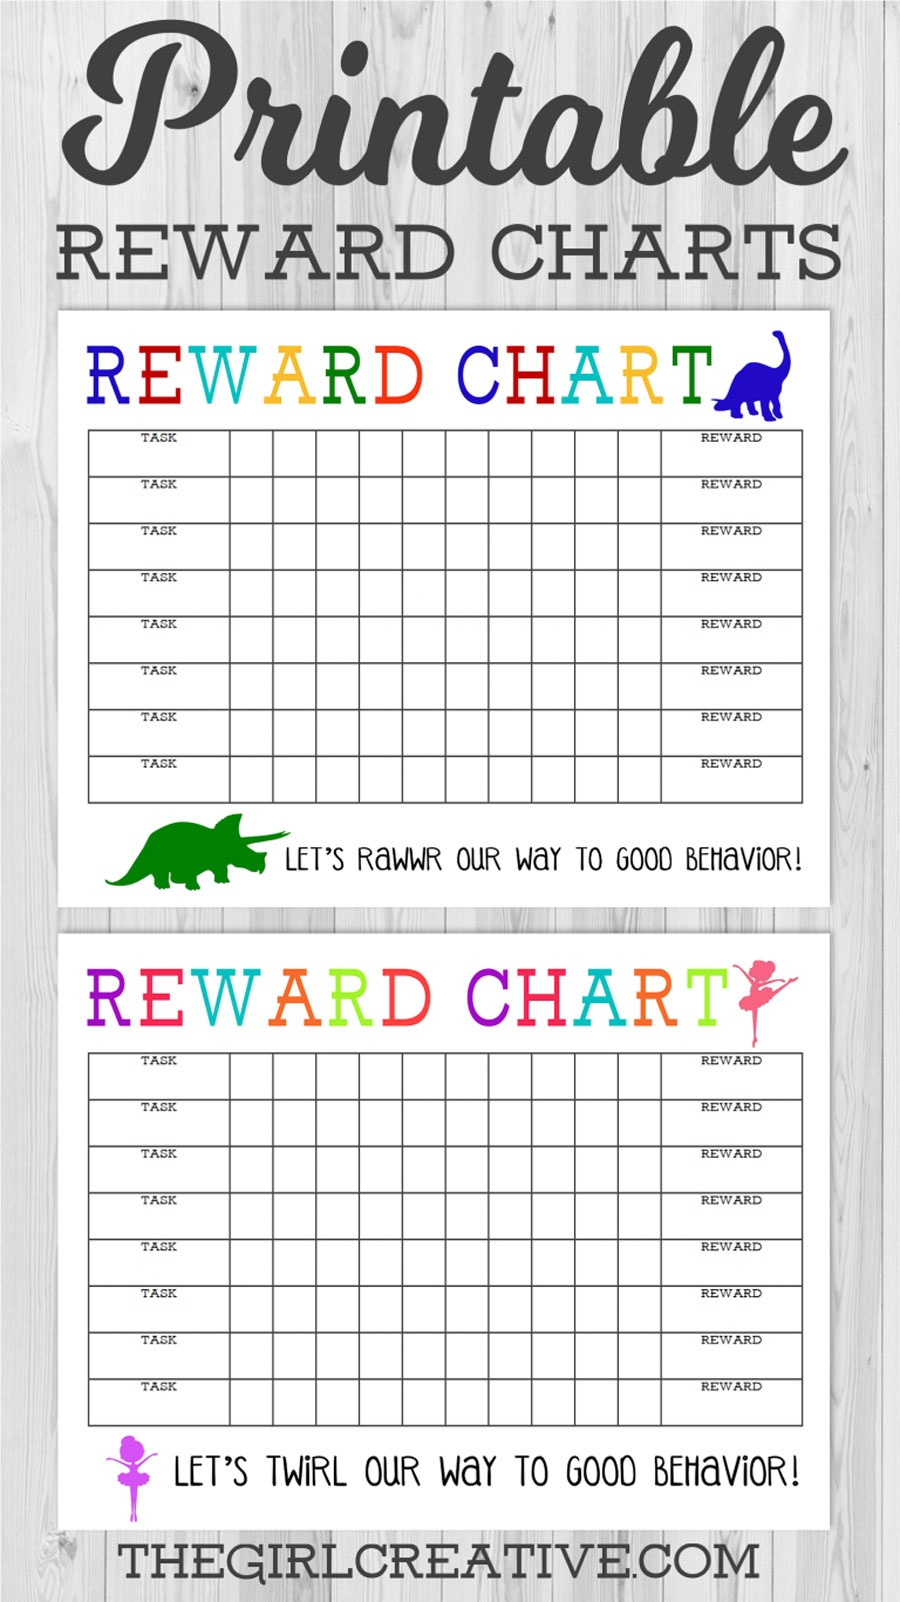 40 Printable Reward Charts For Kids (Pdf, Excel & Word) - Free Printable Sticker Charts